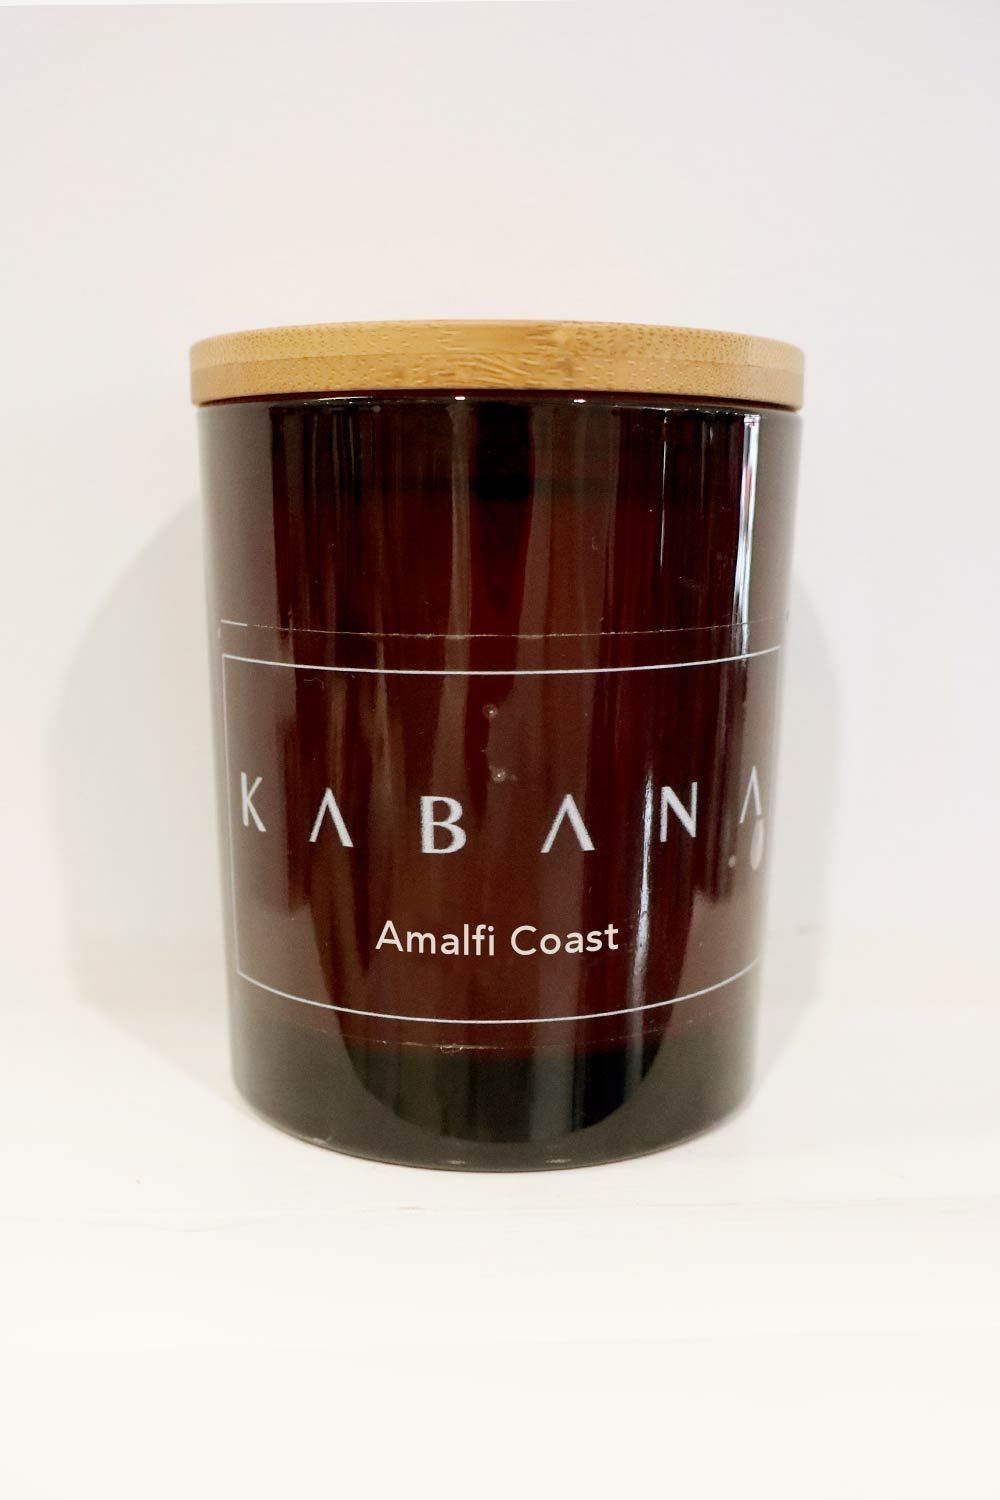 Amber Glass Candle Amalfi Coast - Kabana Shop